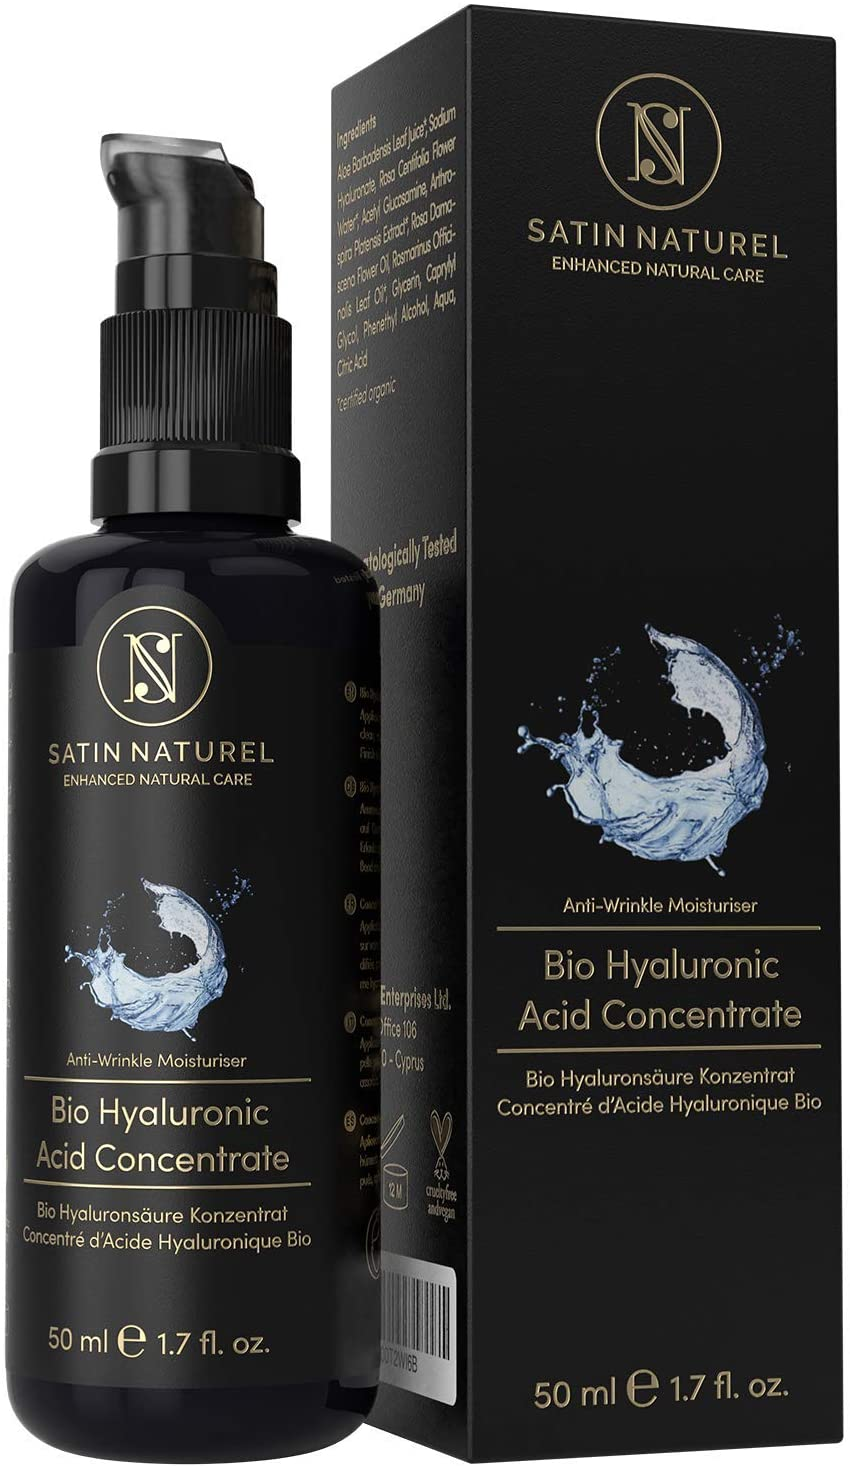 Sérum acide hyaluronique satin naturel